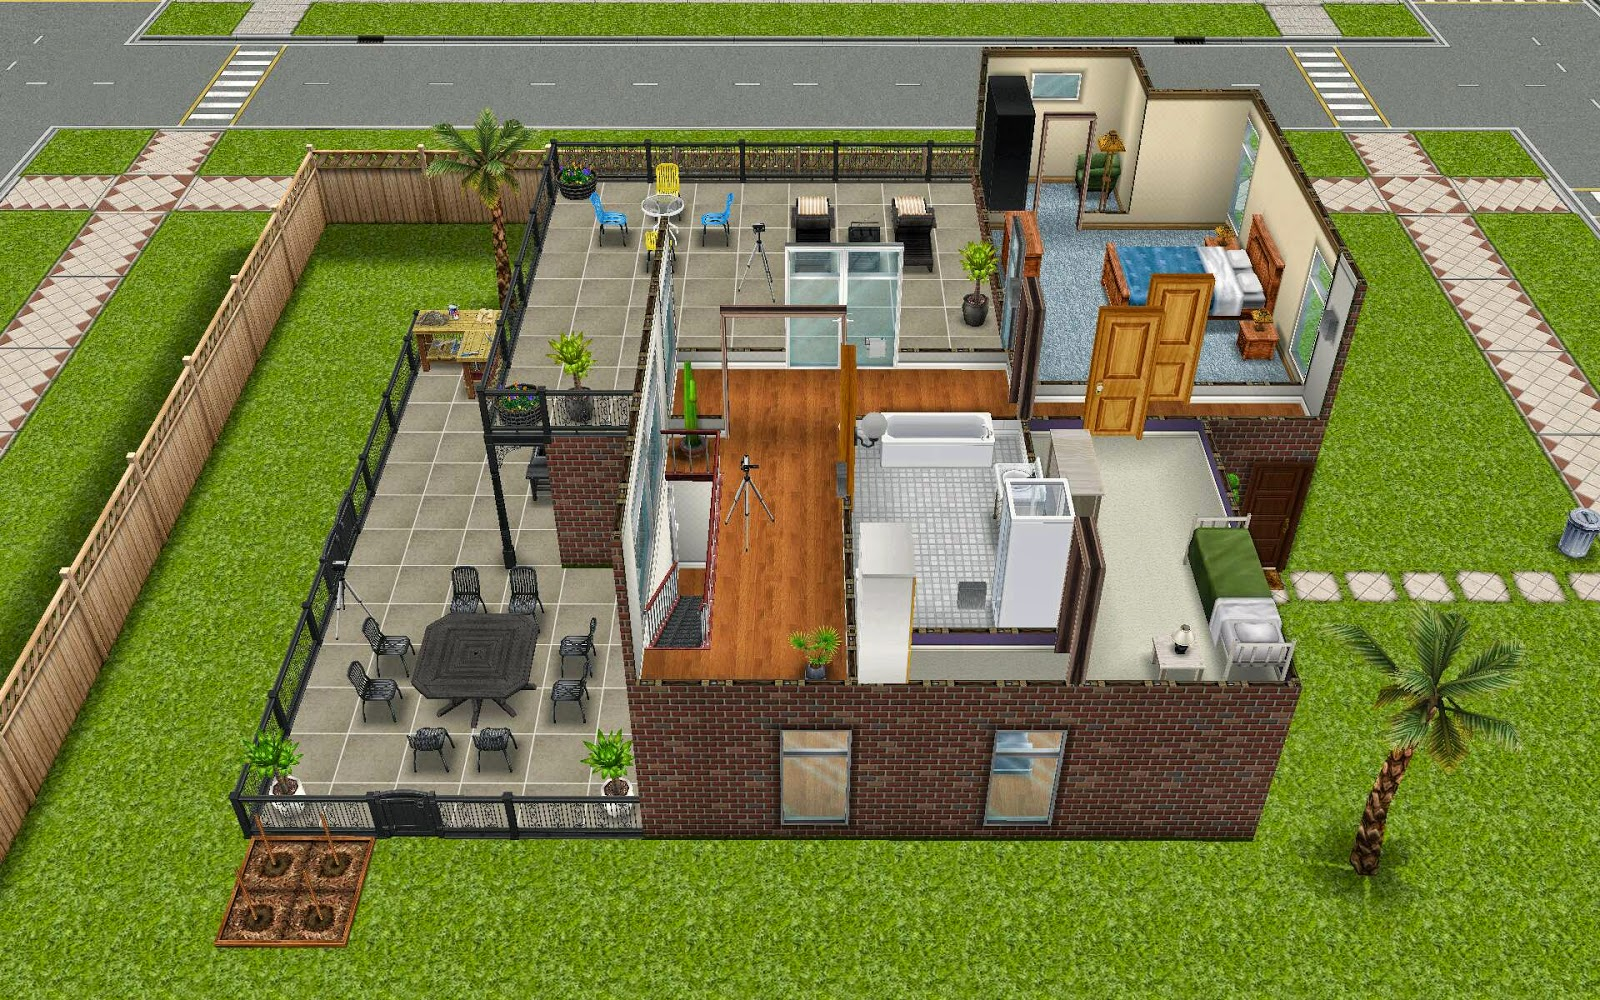 Sims freeplay housing diy home quest - Sims freeplay designer home ...